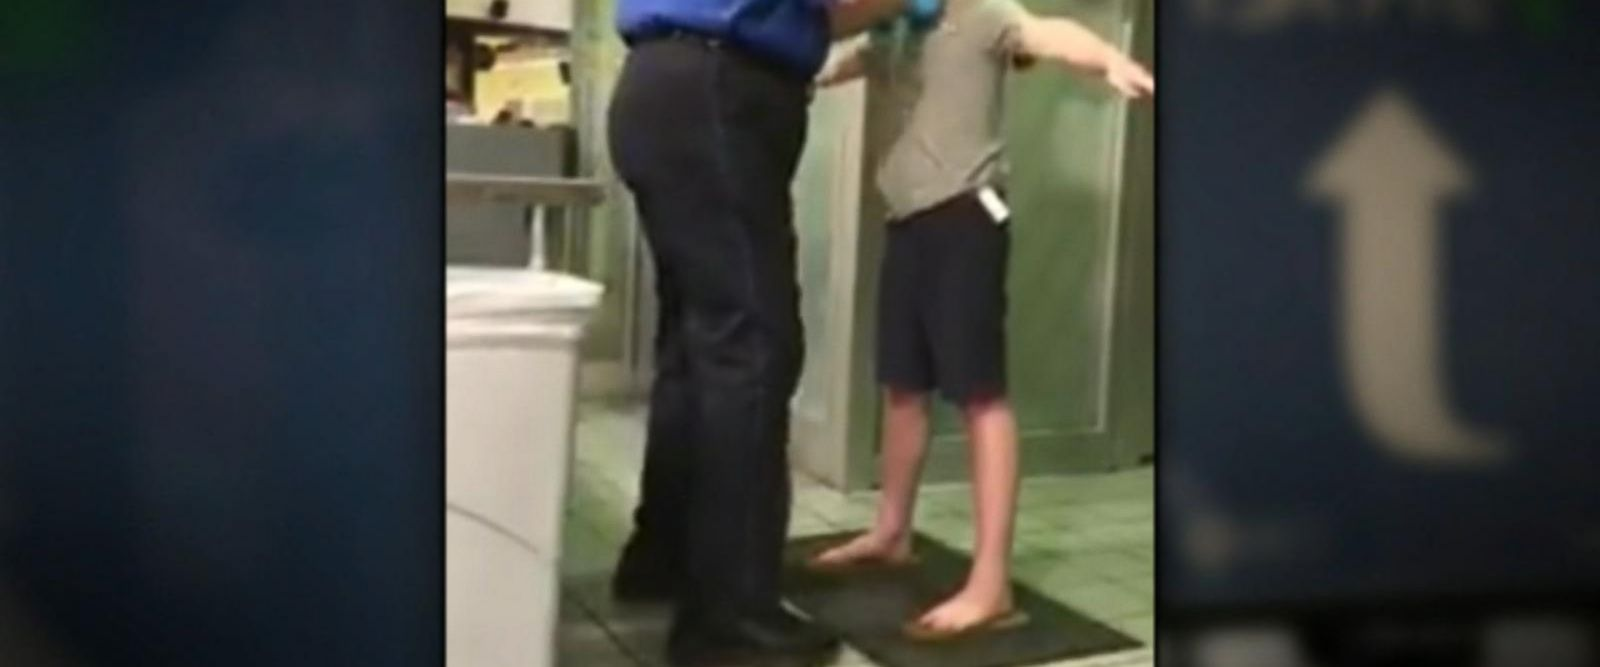 VIDEO: Outraged mother shows TSA pat-down of son